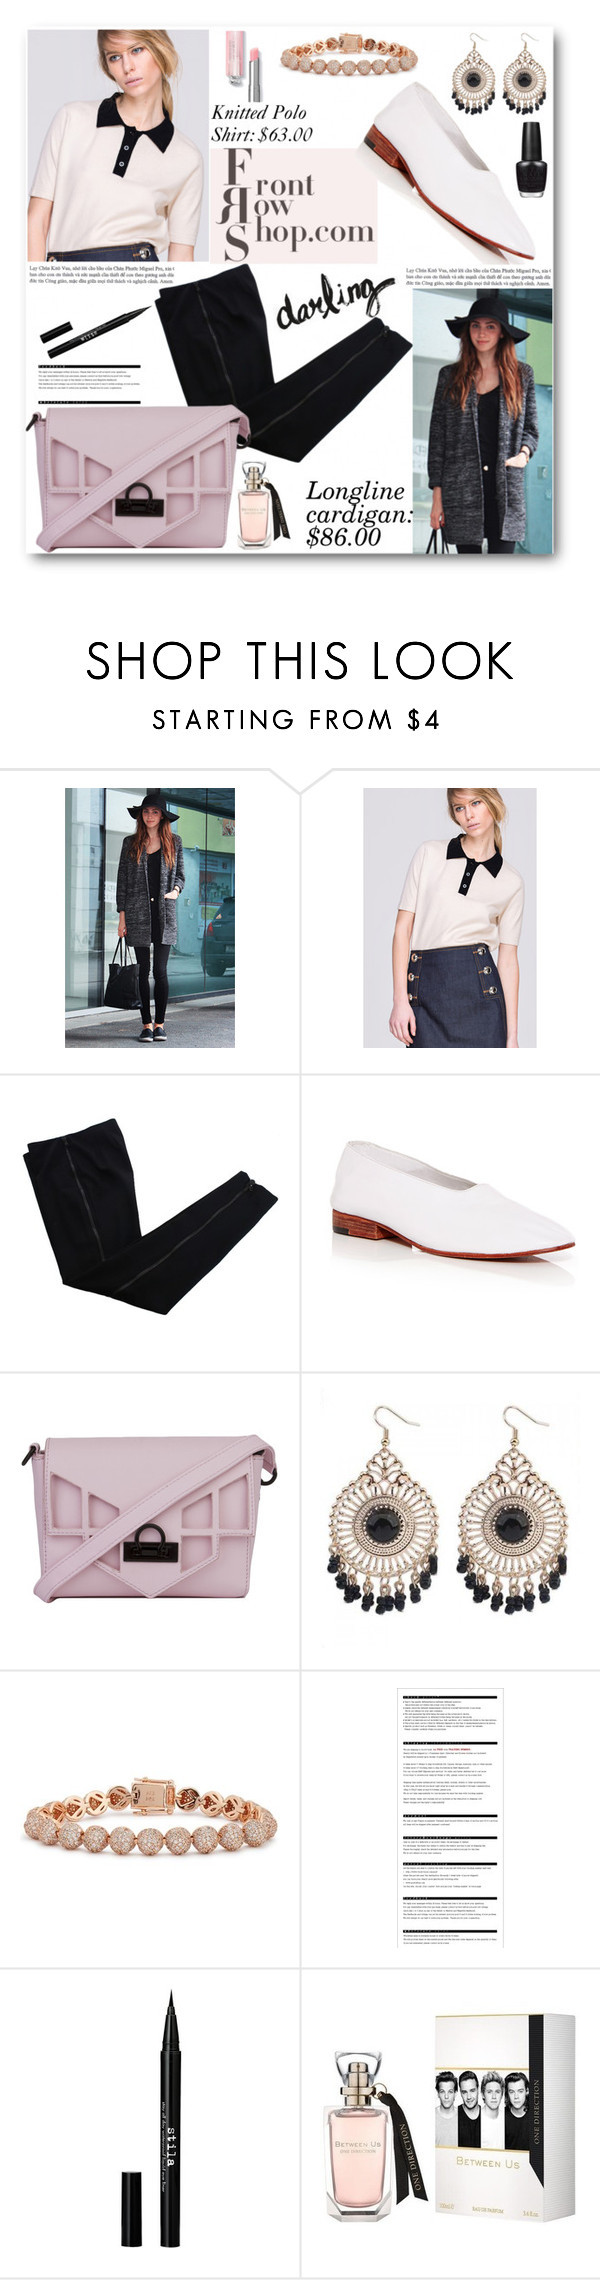 """Frontrowshop September Contest"" by angelstar92 ❤ liked on Polyvore featuring Front Row Shop, COSTUME NATIONAL, Martiniano, Nila Anthony, Eddie Borgo, Arche, Stila and OPI"